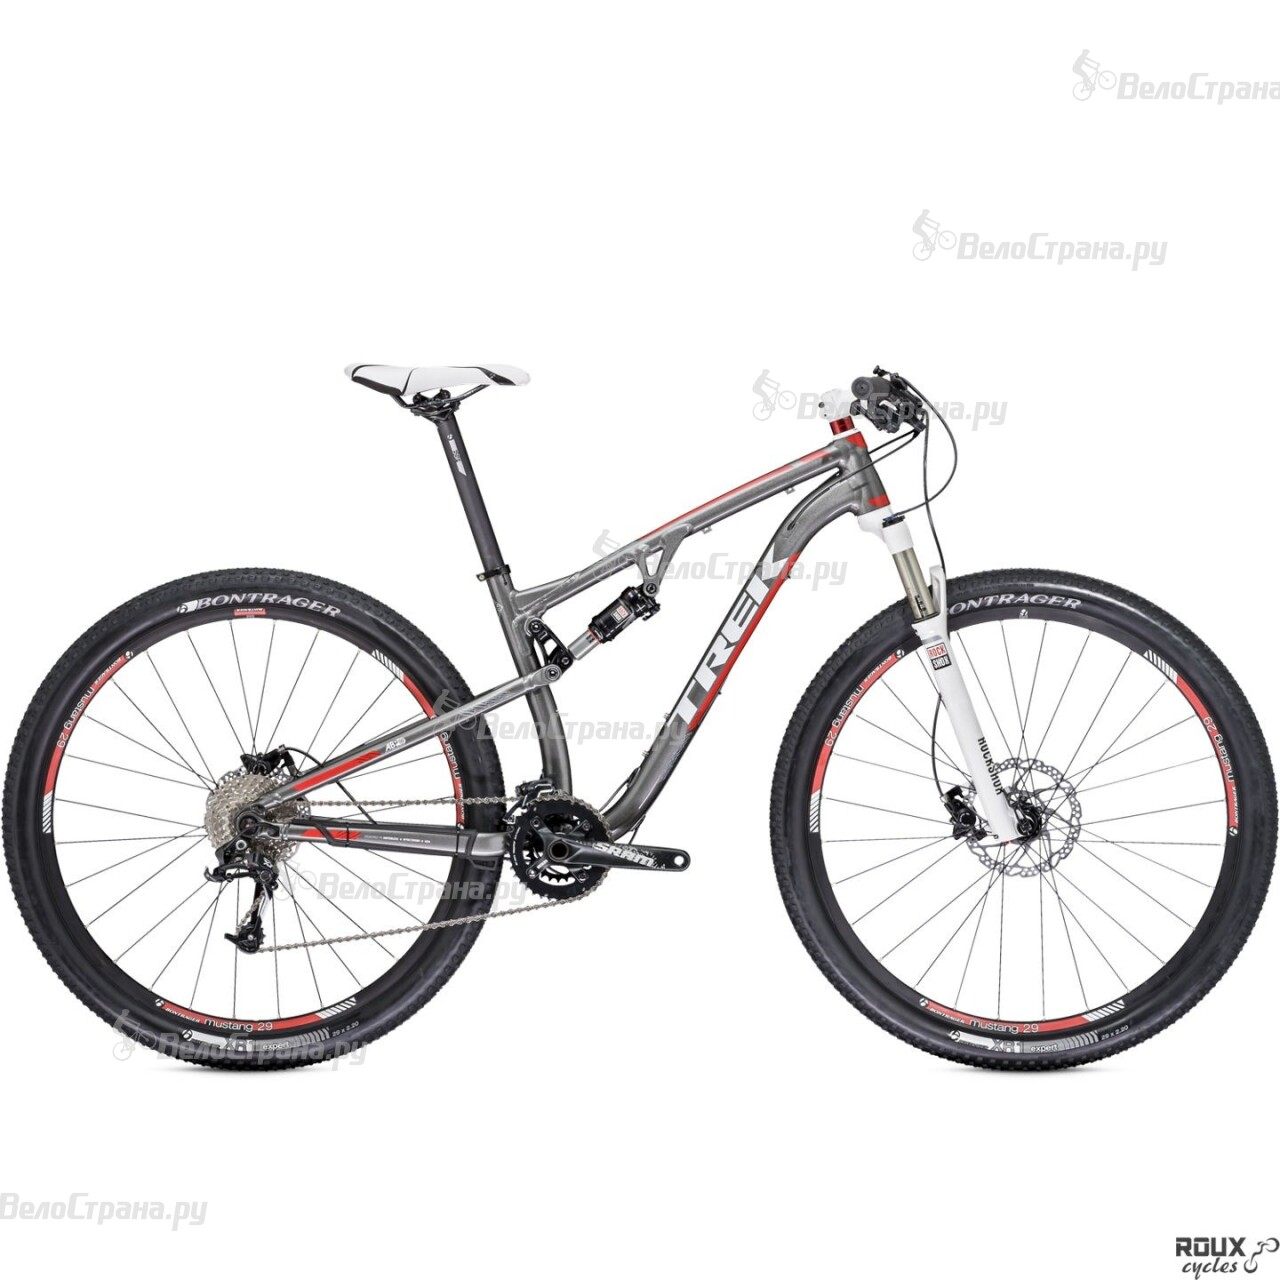 Велосипед Trek Superfly FS 7 (2014)